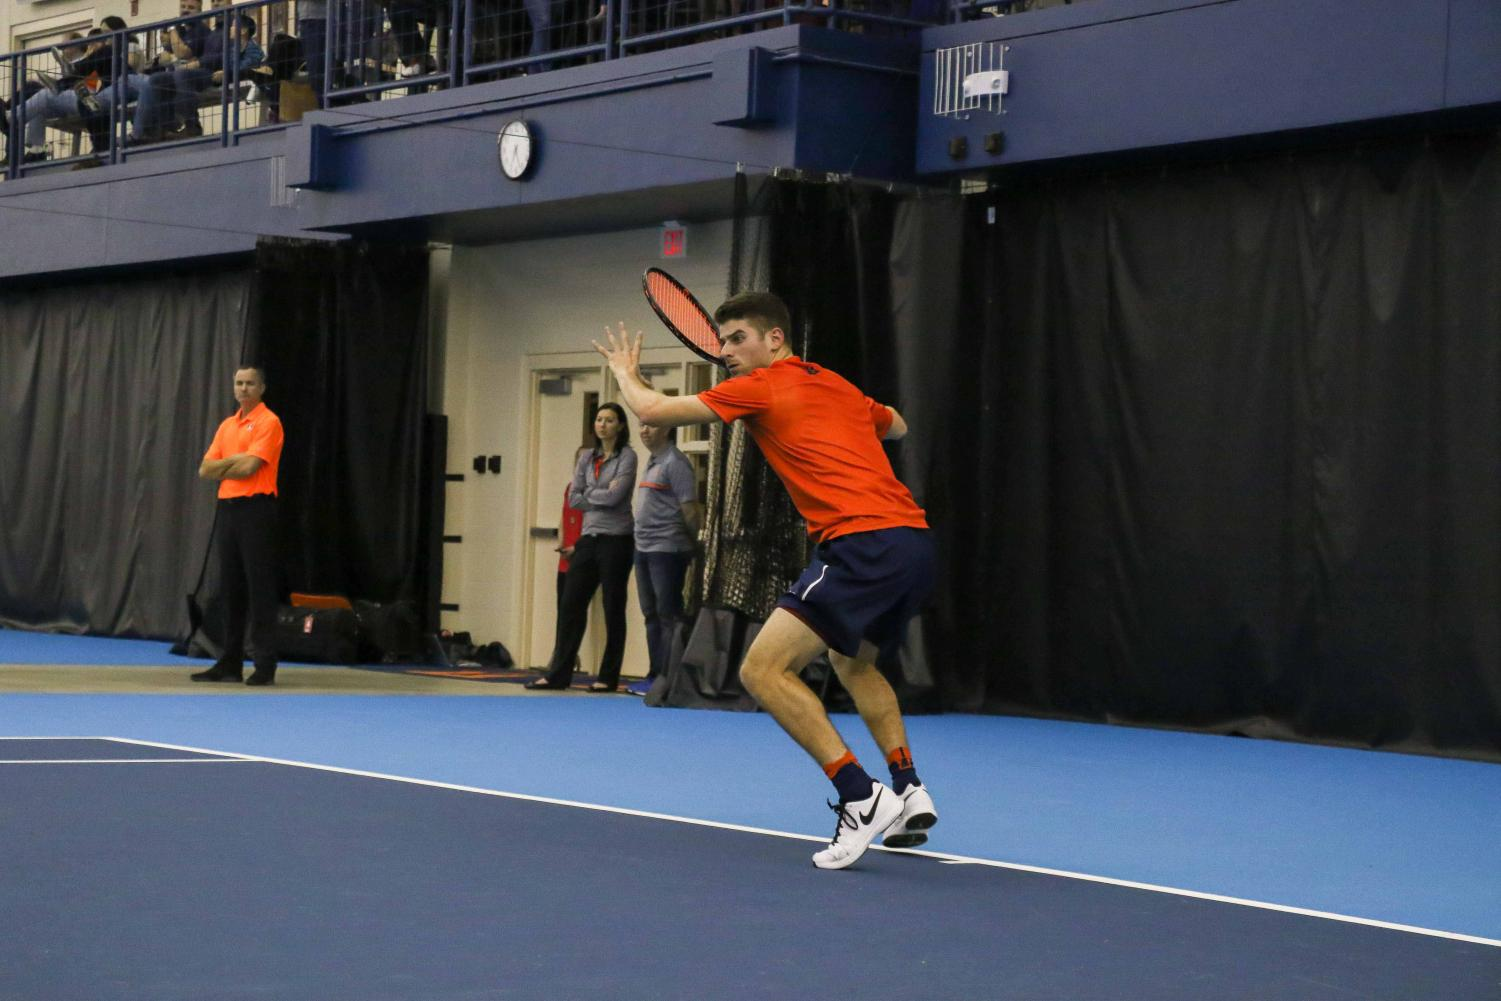 Illinois'  Aron Hiltzik prepares to strike back the ball in the meet against University of Kentucky on Feb. 24, 2017 at the Atkins Tennis Center in Urbana.